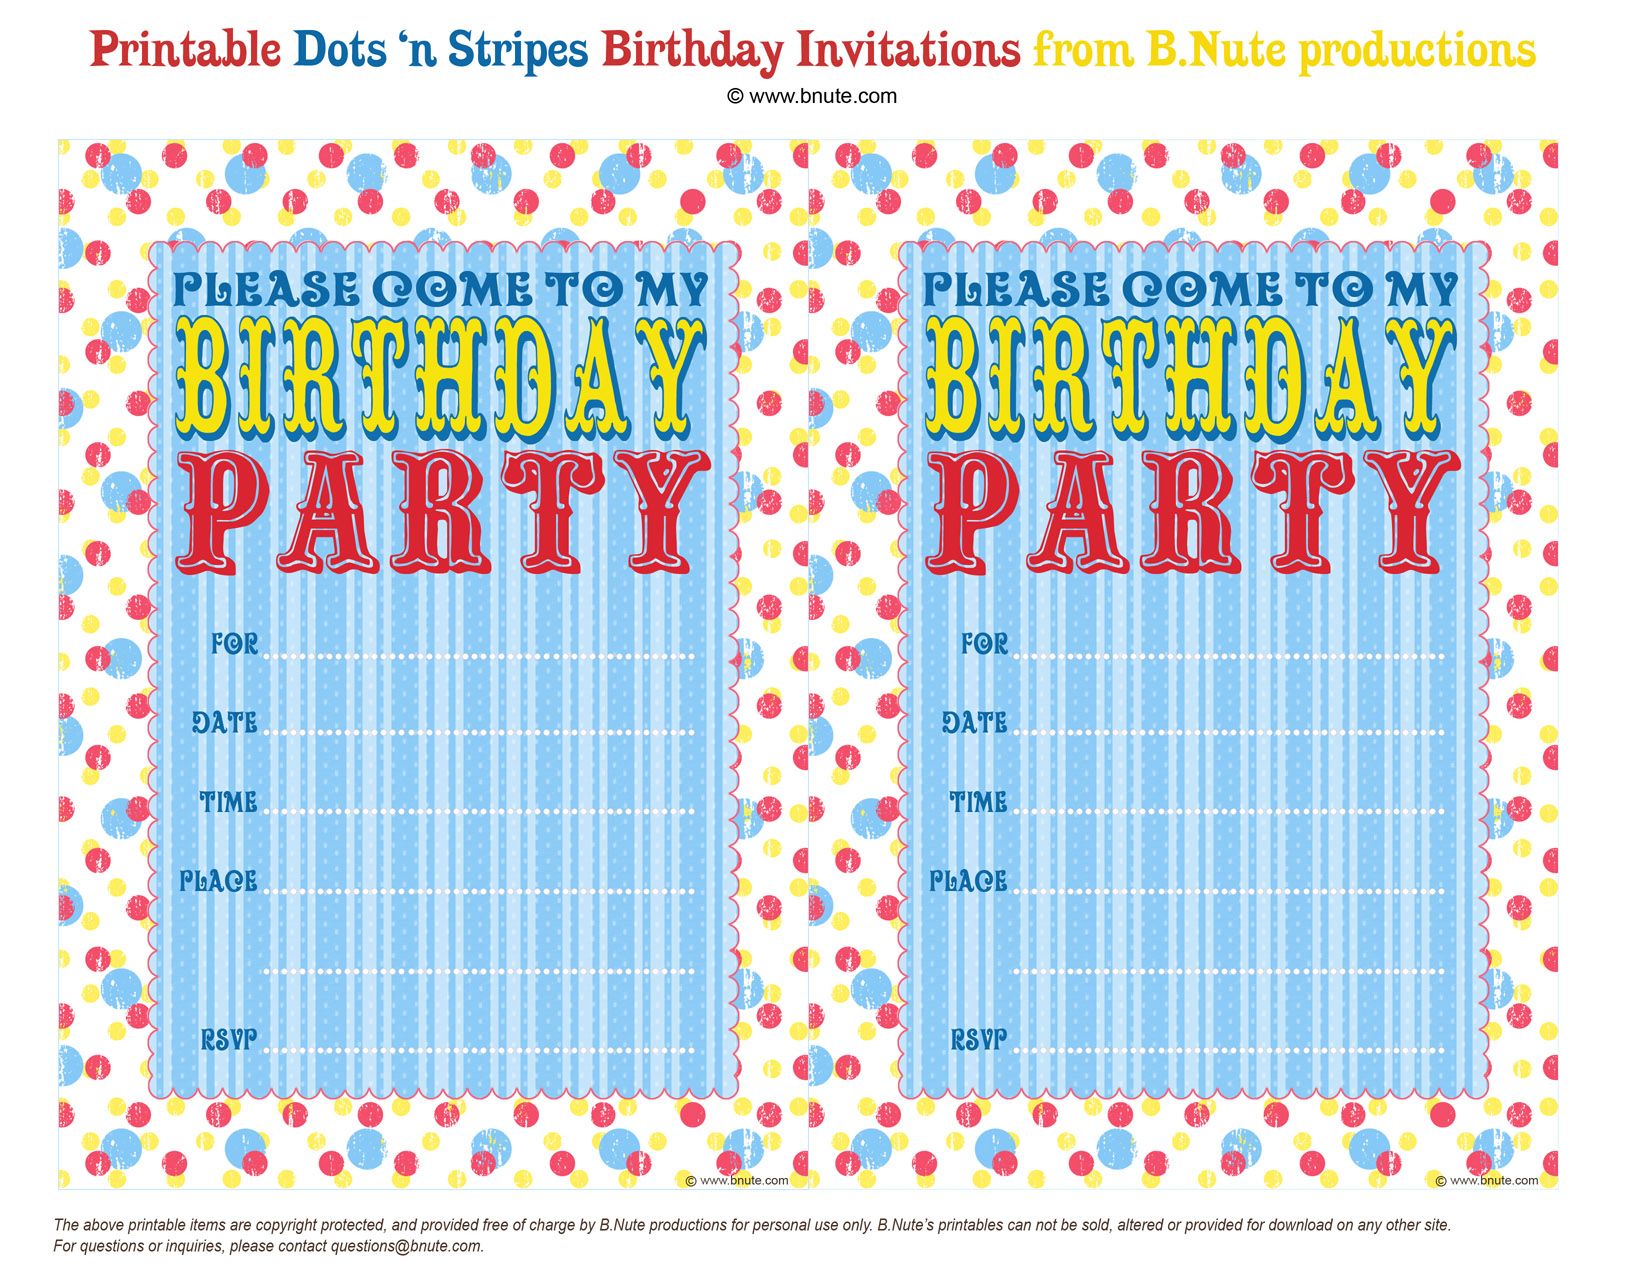 bnute productions Free Printable Dots n Stripes Birthday Party – Invitations Birthday Party Free Printable